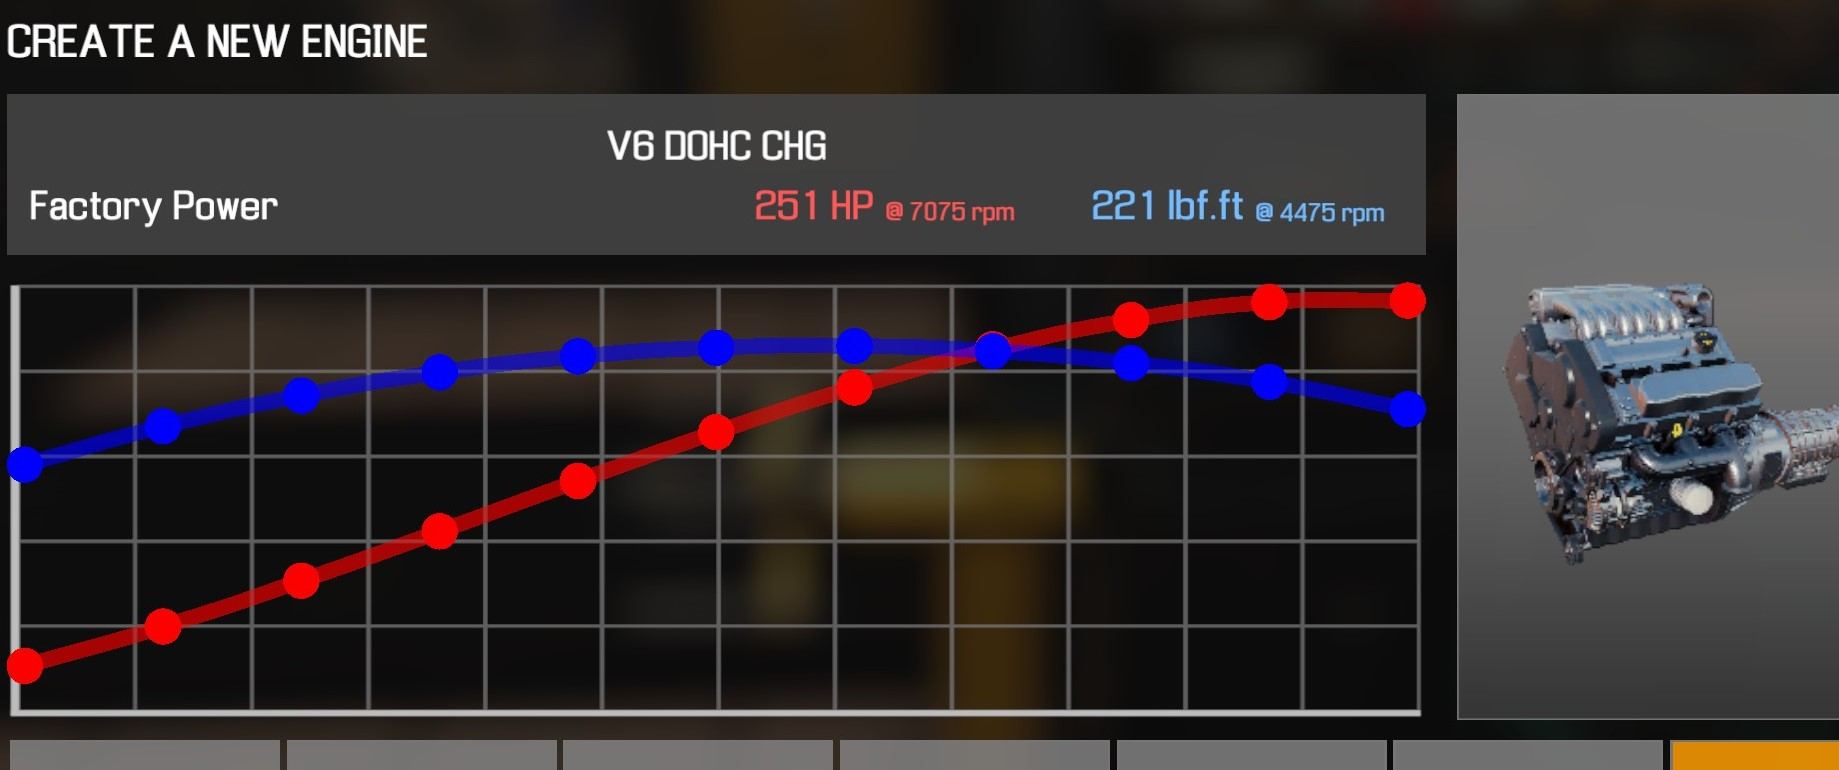 Car Mechanic Simulator 2021 - How to Buy Engine Parts and All Engines in Game Information - V6 DOHC CHG - D7913F0